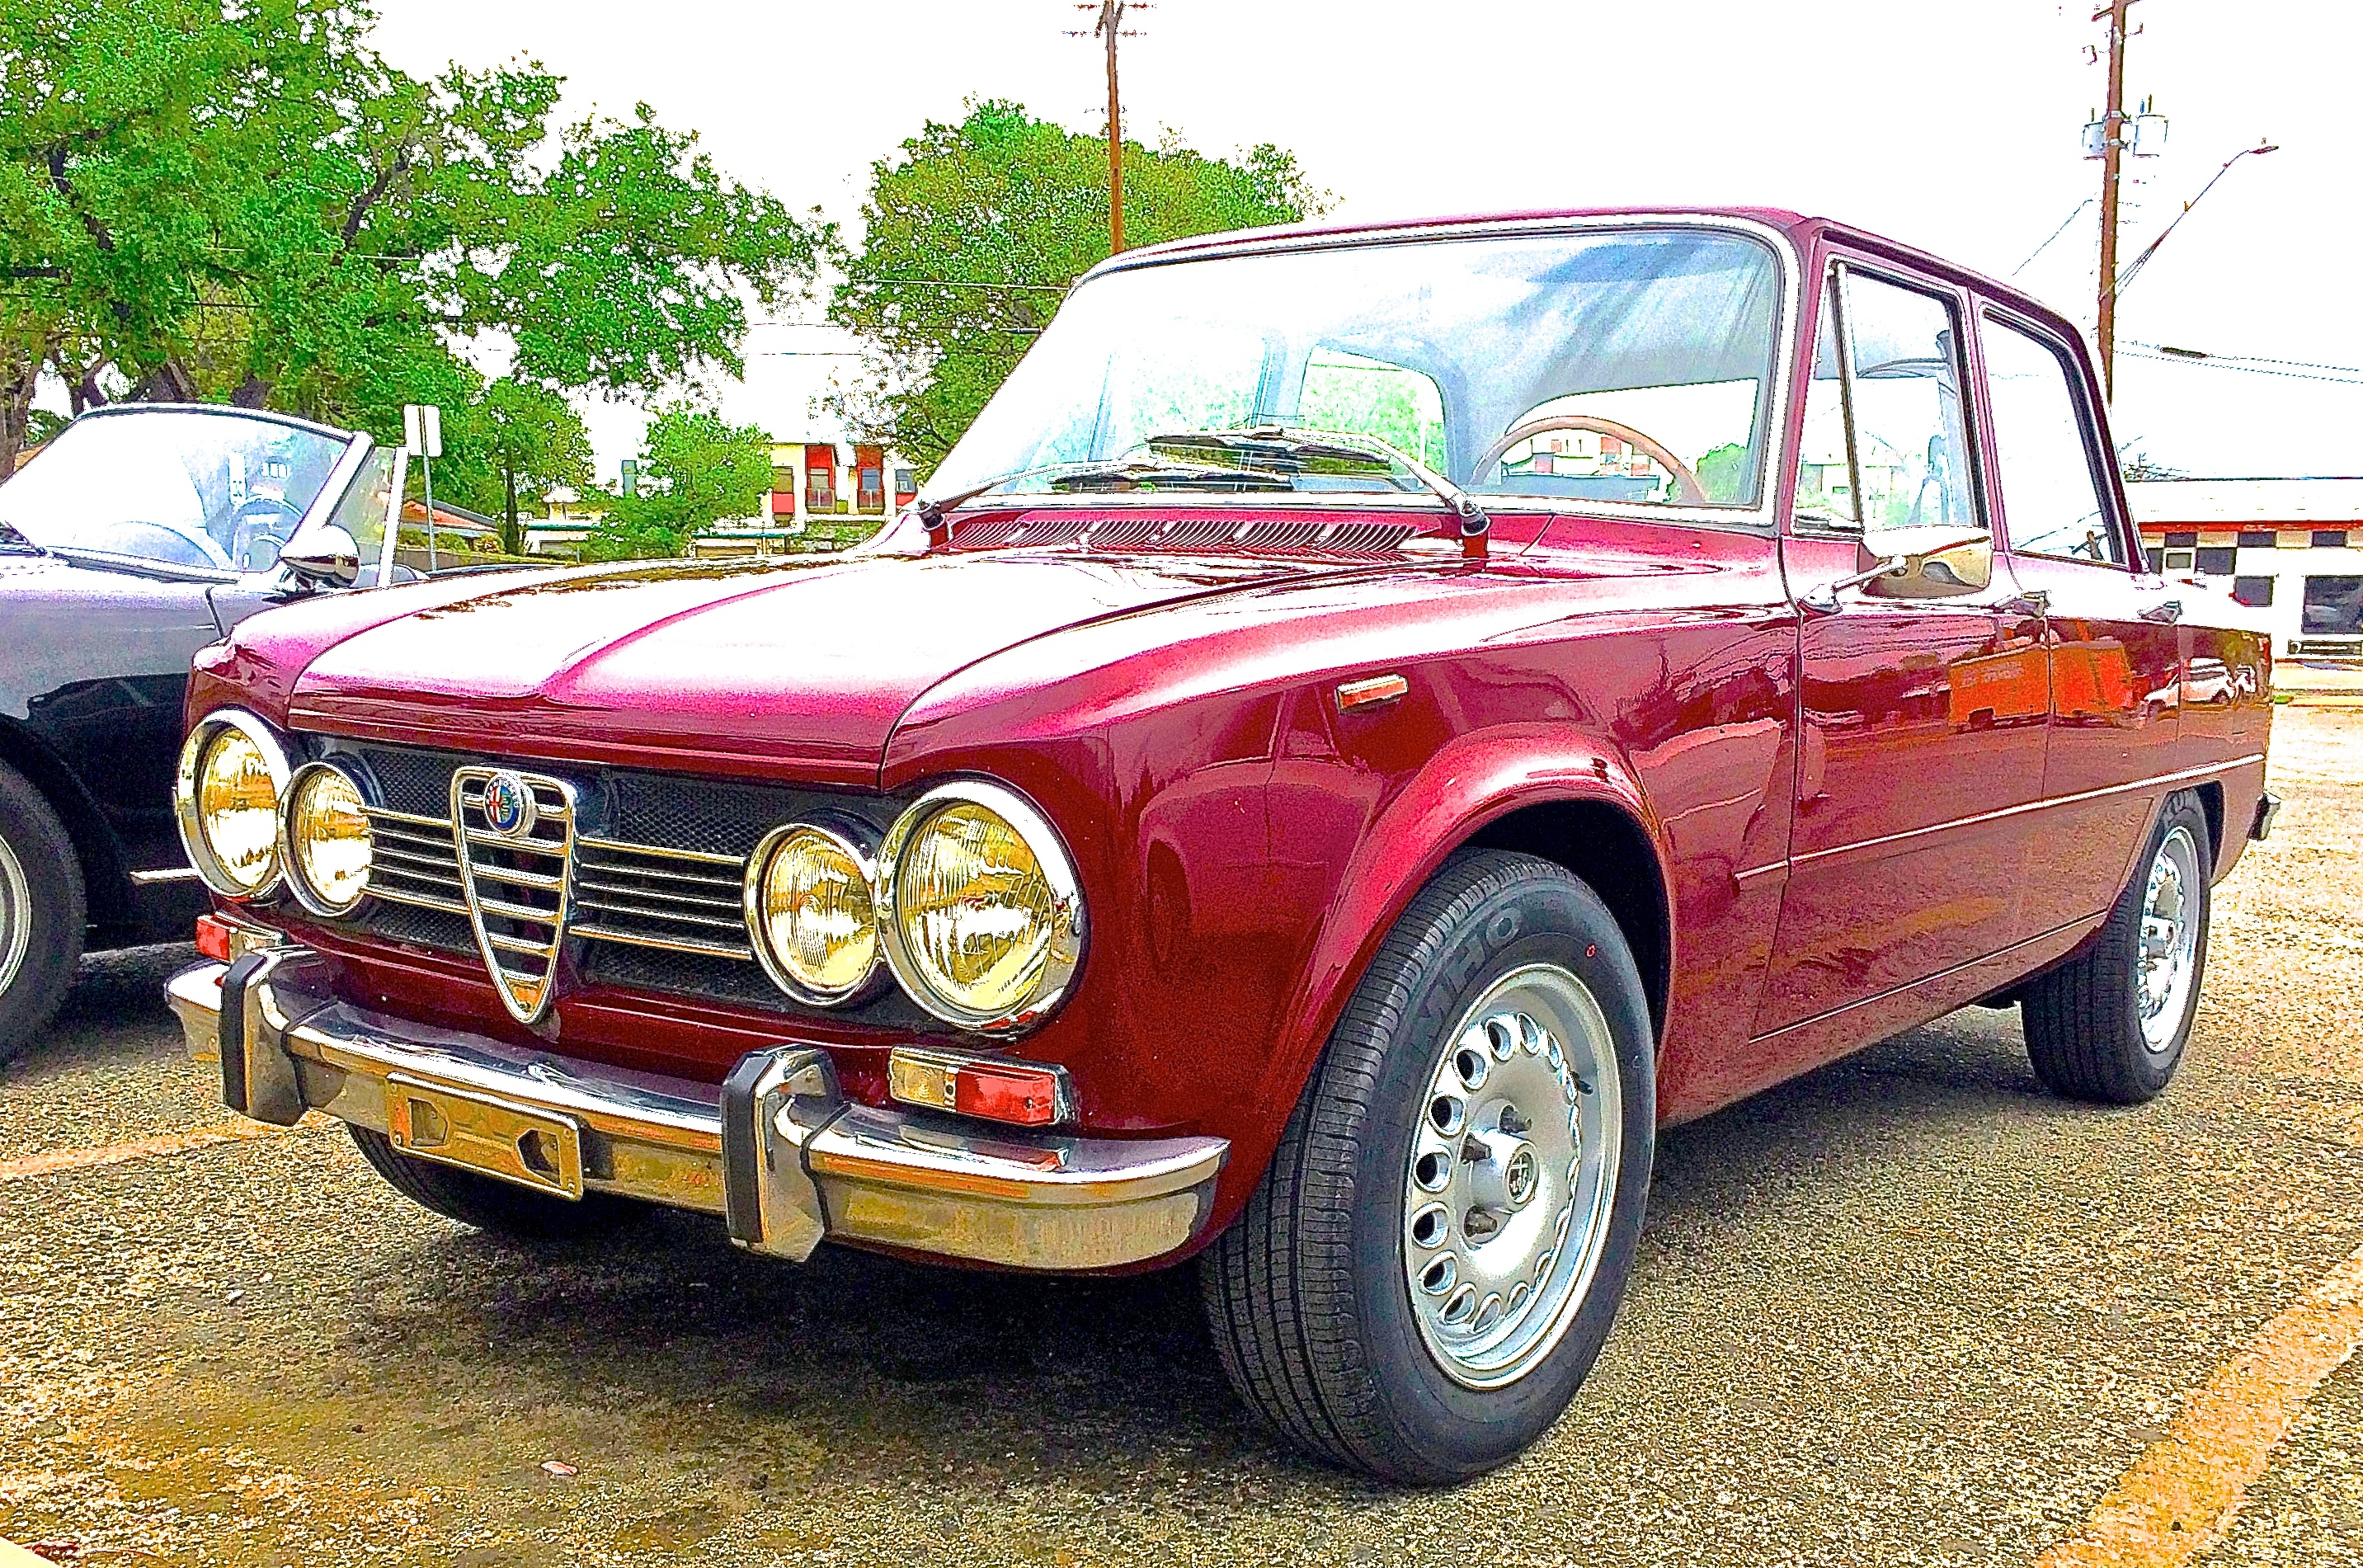 alfa romeo giulia super 1 3 on s lamar atx car pictures real pics from austin tx streets. Black Bedroom Furniture Sets. Home Design Ideas